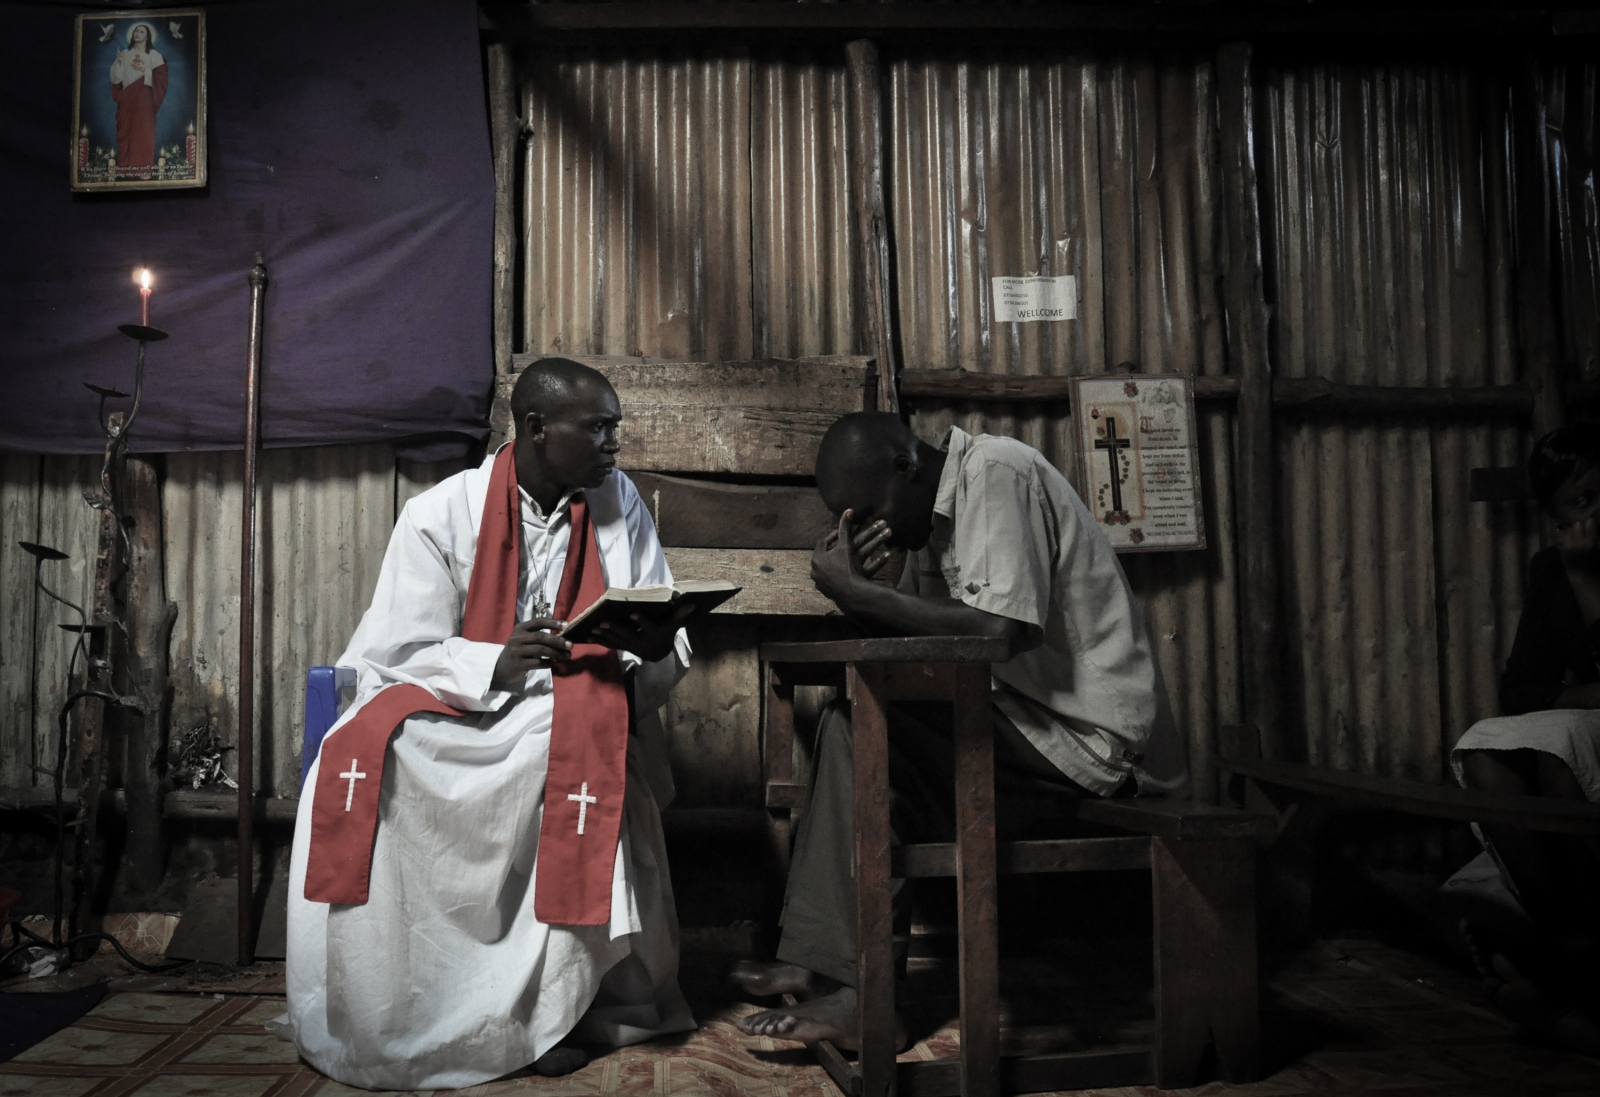 Photography image -  A priest in the Nairobi slum of Kibera listens to a man who believes he has been possessed by a demon and has come to church to try and have it removed. While most priests in Kibera preach on Sundays, many turn to more unconventional healing methods during weekdays in order to earn a little extra income.